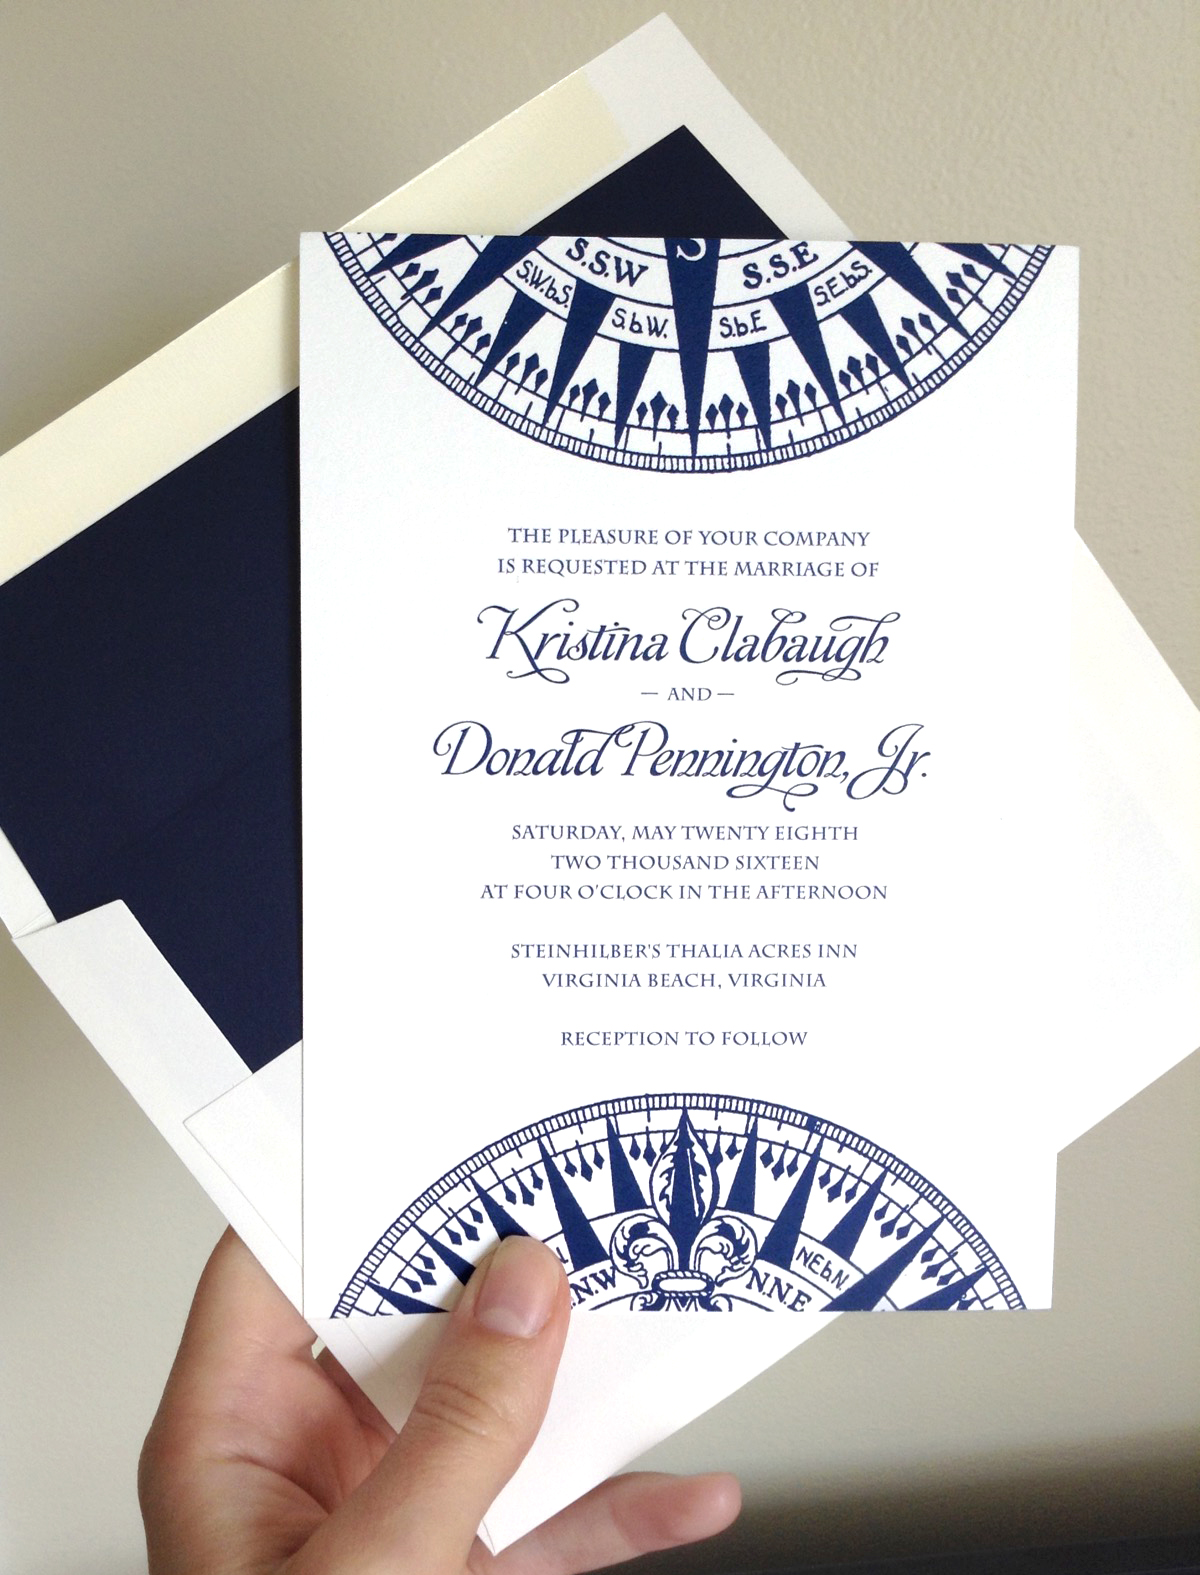 Nautical Wedding Invitations in Navy and White with Compass Rose by Concertina Press